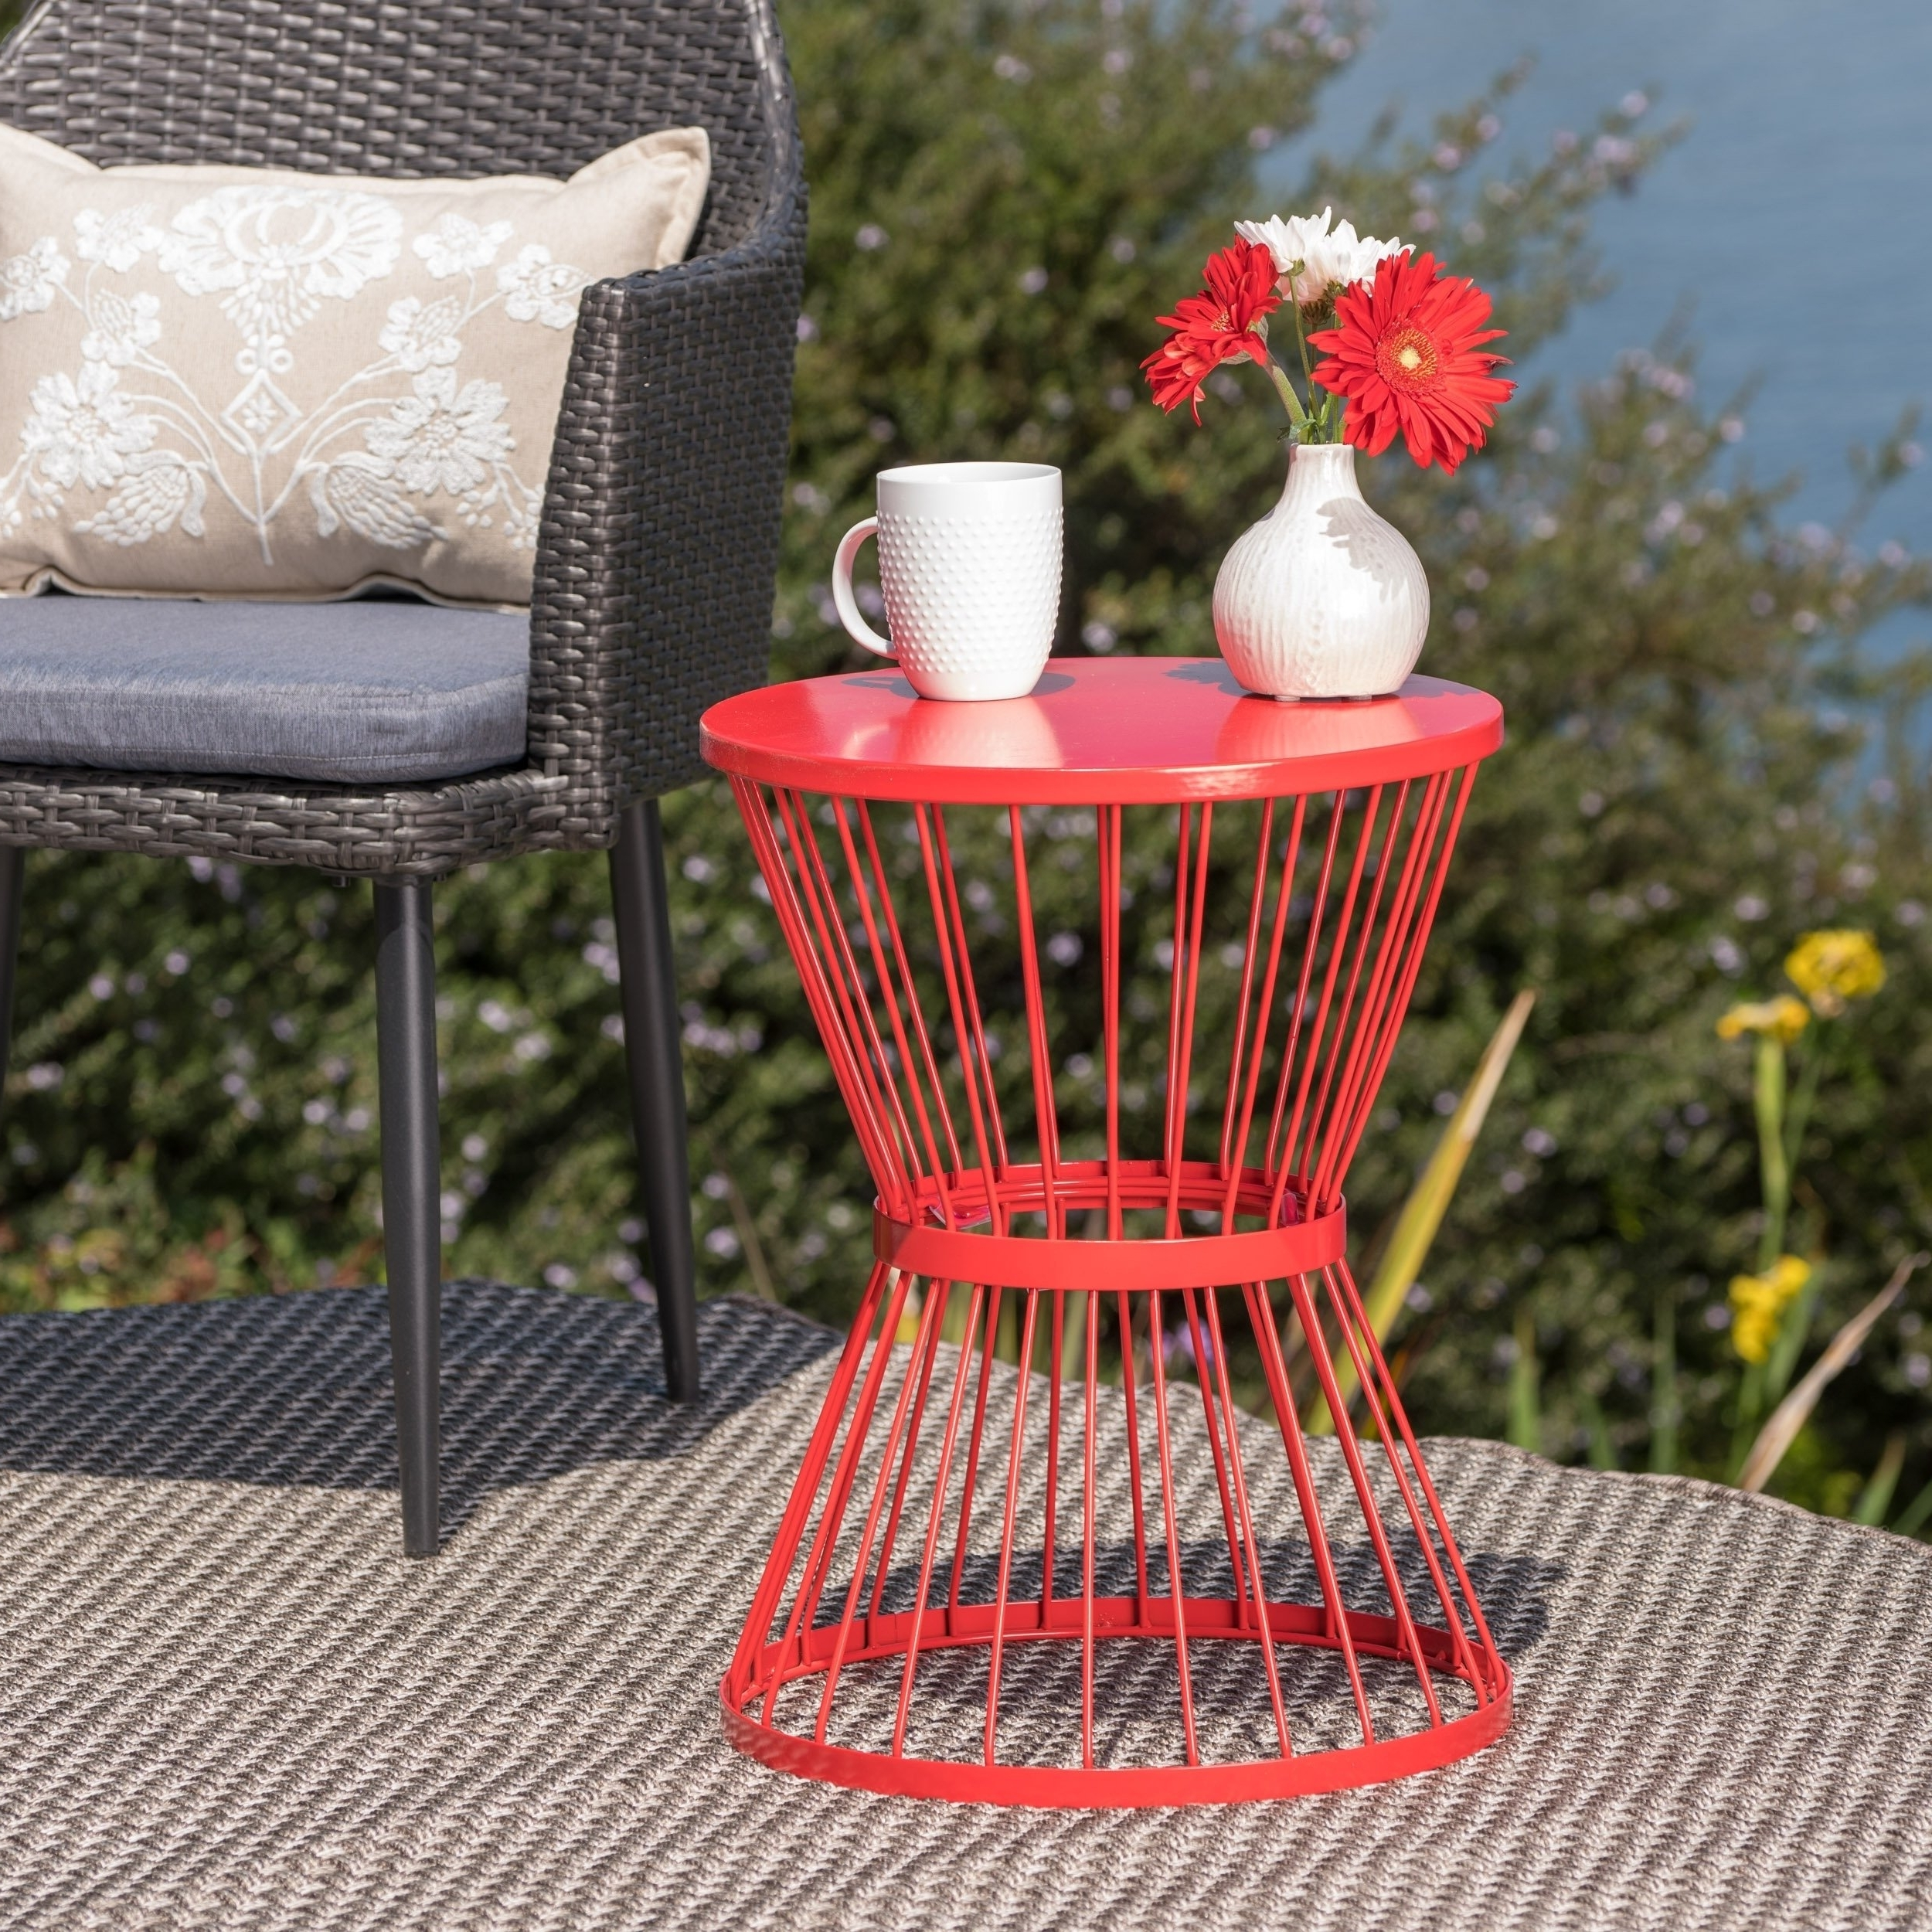 Popular Shop Lassen Outdoor 16 Inch Round Side Tablechristopher Knight Intended For Lassen 5 Piece Round Dining Sets (View 20 of 25)